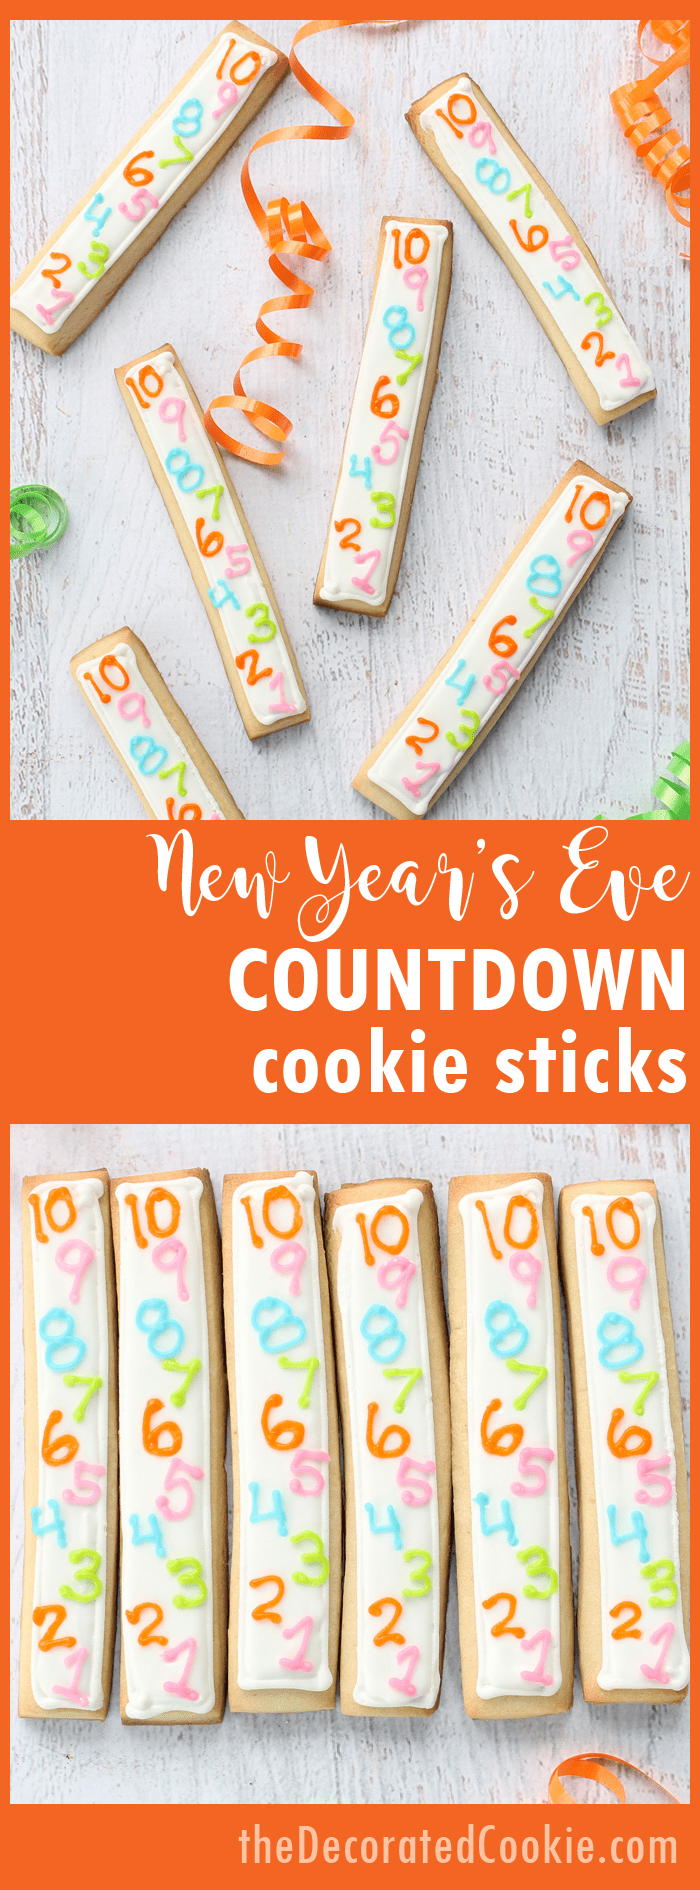 New Years Eve countdown cookie sticks and other treats from the archives